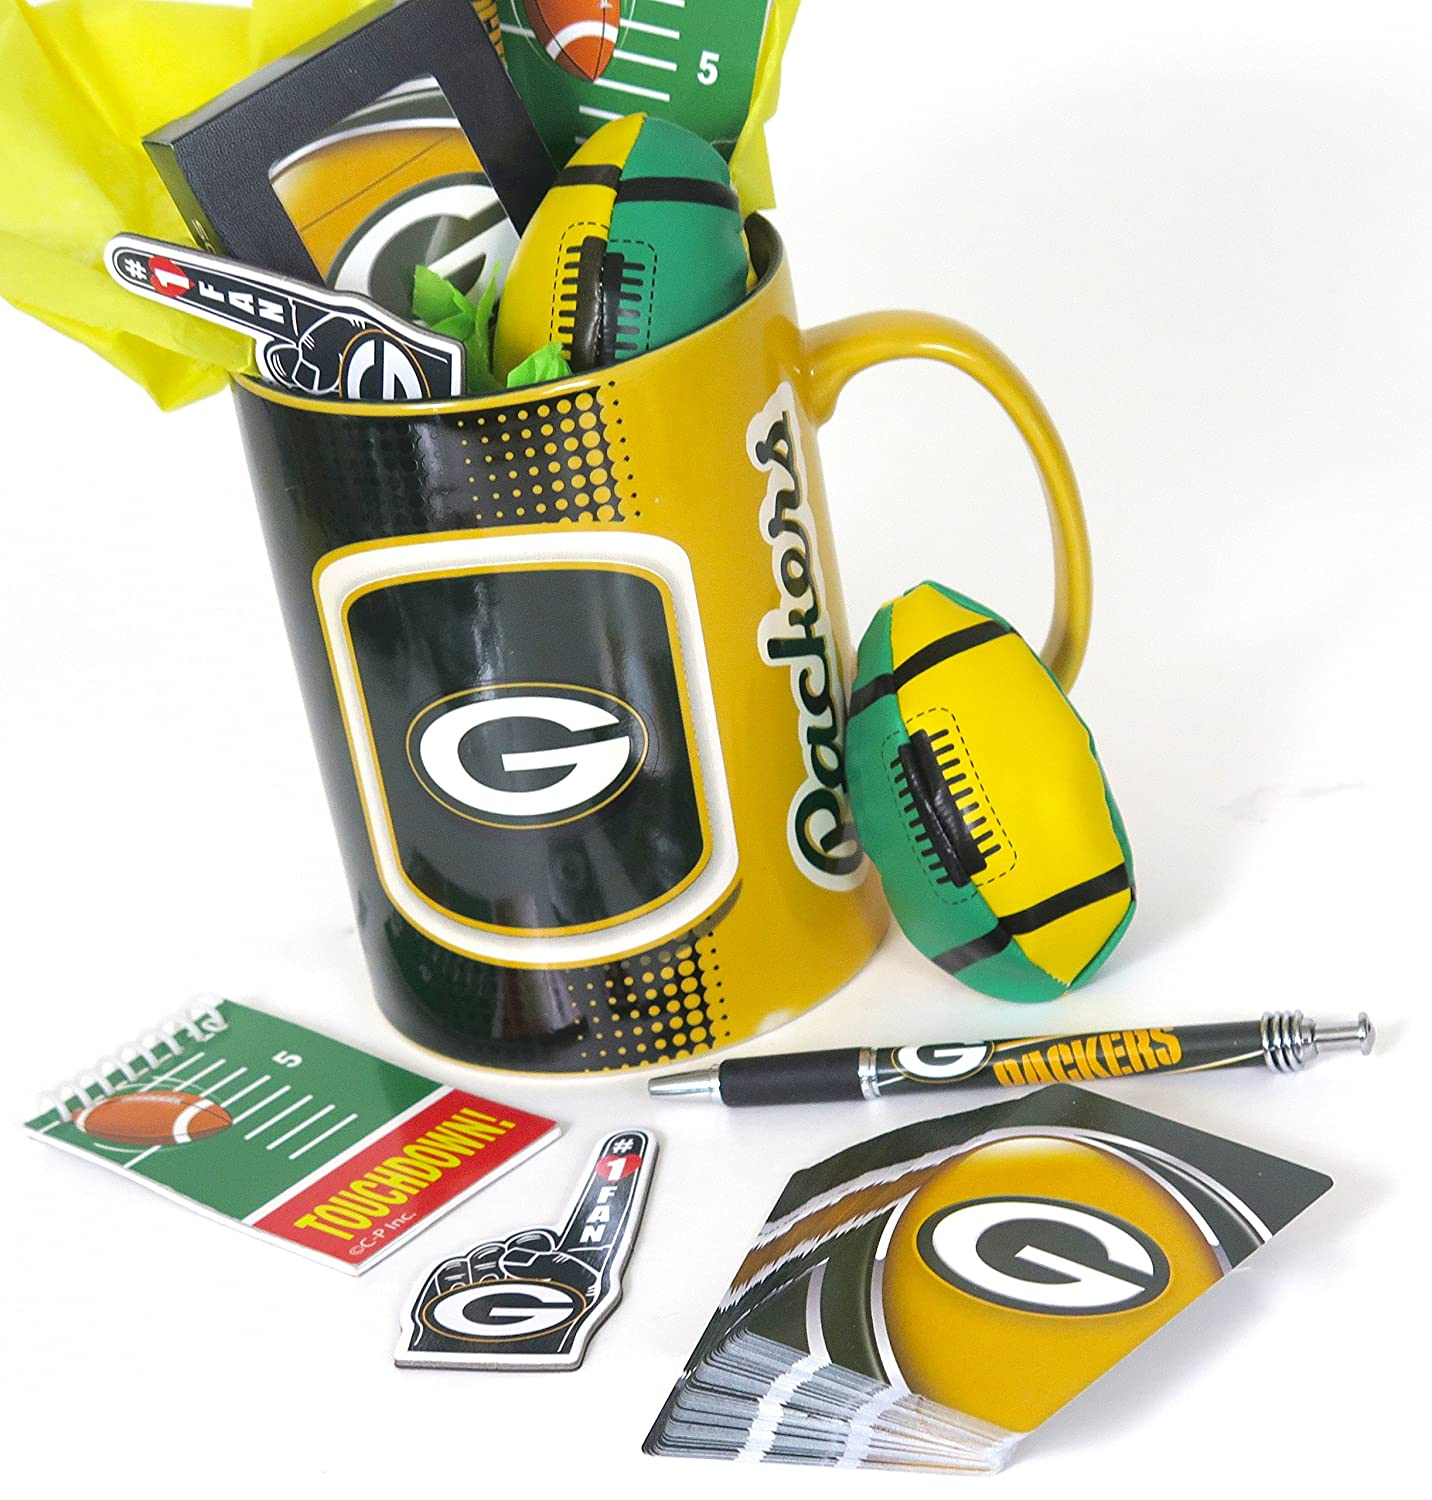 Green Bay Packers Dads gift set featuring a super Jumbo 1 quart coffee mug A outstanding gift for Dad on Fathers Day.